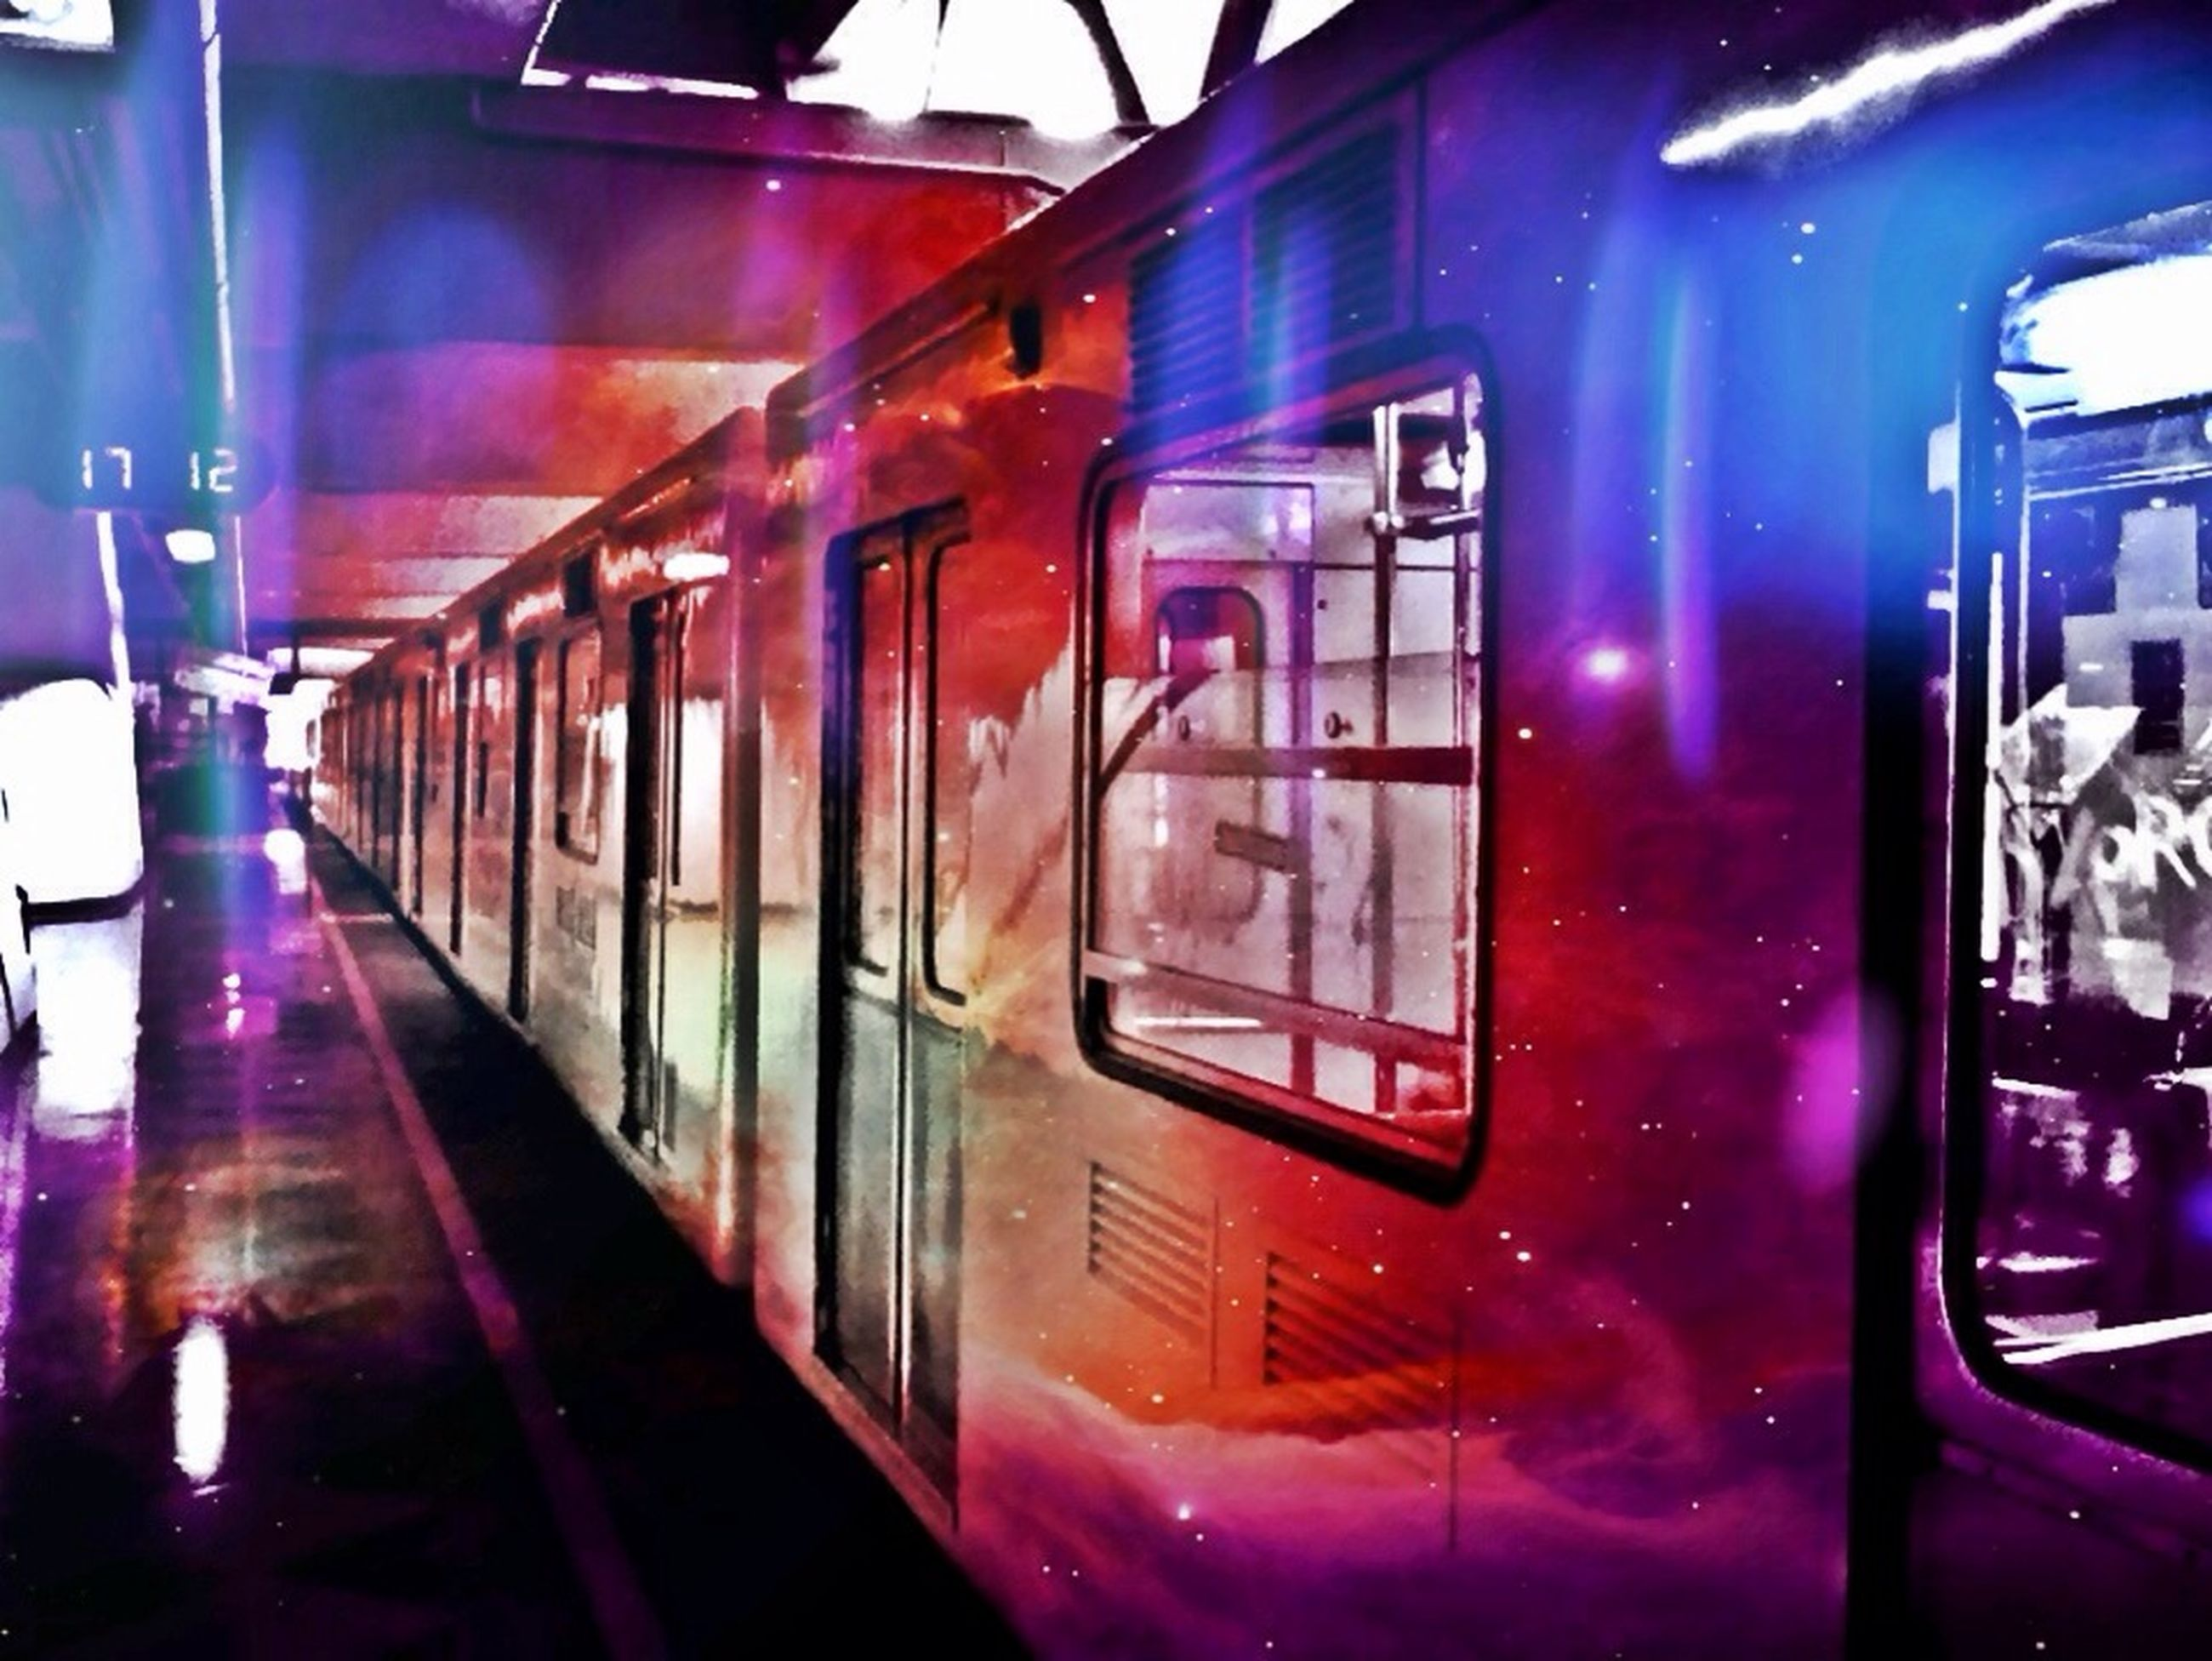 transportation, mode of transport, public transportation, train - vehicle, land vehicle, travel, railroad station platform, rail transportation, passenger train, railroad station, railroad track, illuminated, indoors, car, glass - material, vehicle interior, on the move, incidental people, transparent, train